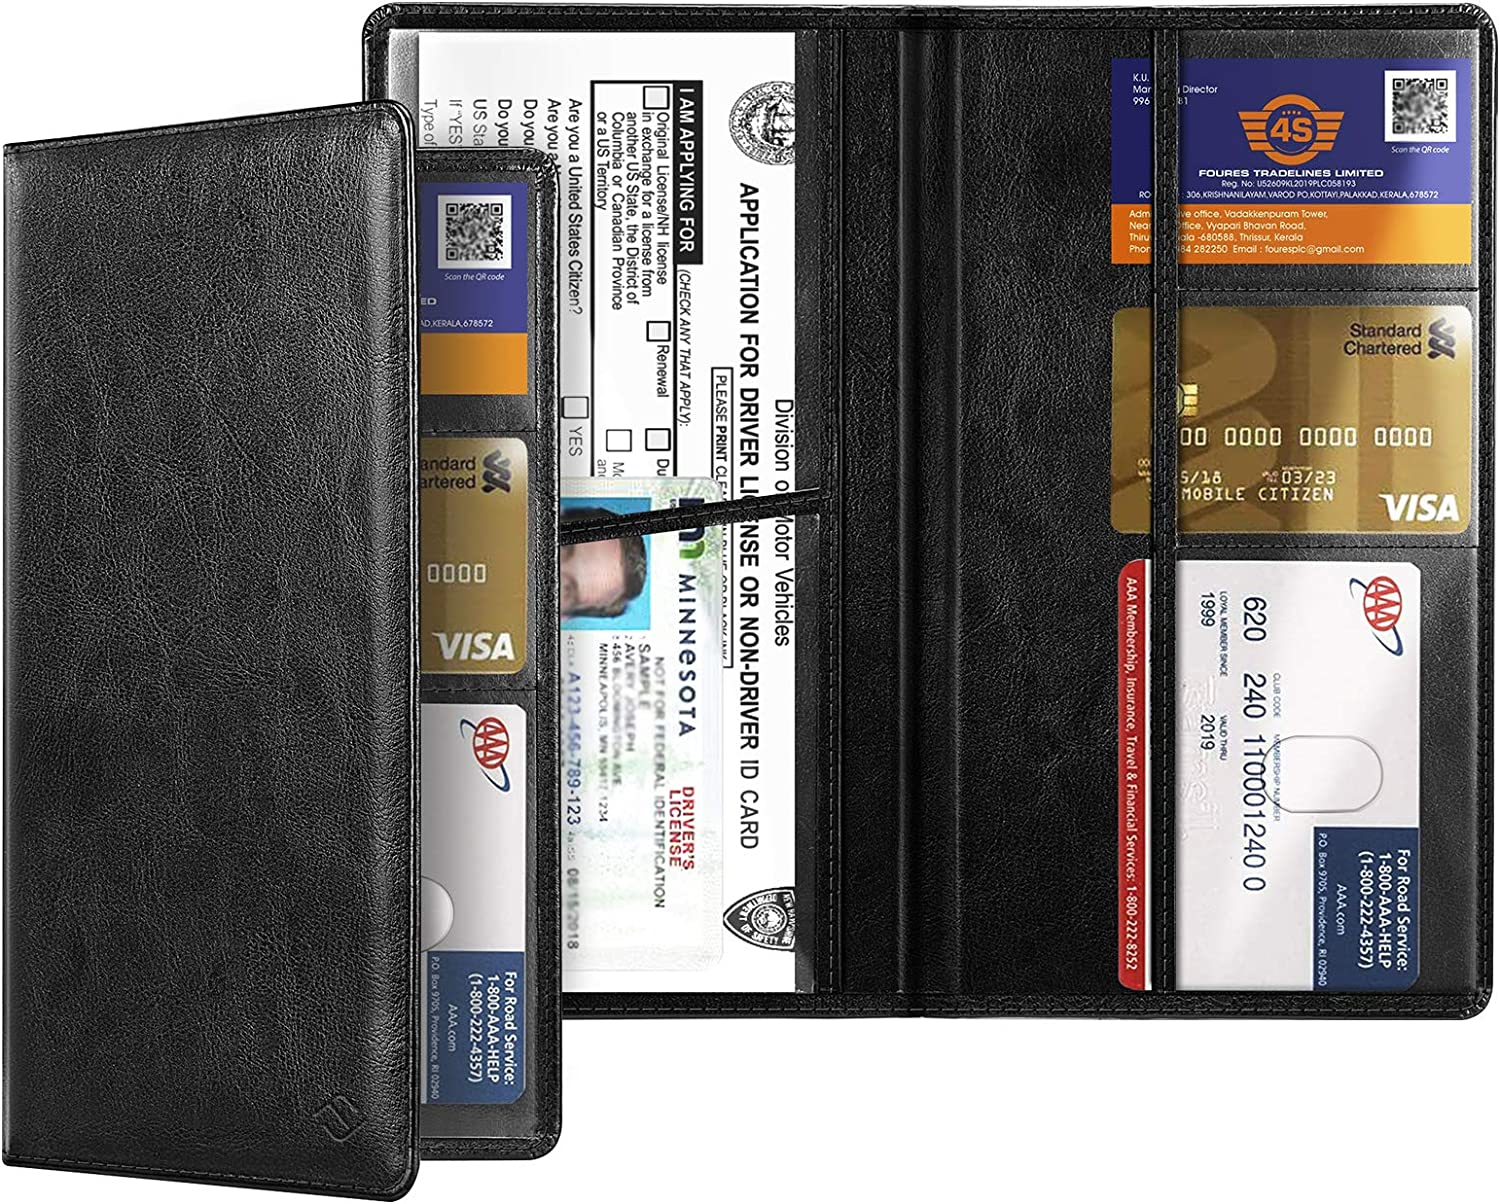 Vintage Black, Compact Size Vehicle Glovebox Card Organizer Wallet ID Card Holder for Essential Automobile Documents FINPAC Car Registration and Insurance Holder